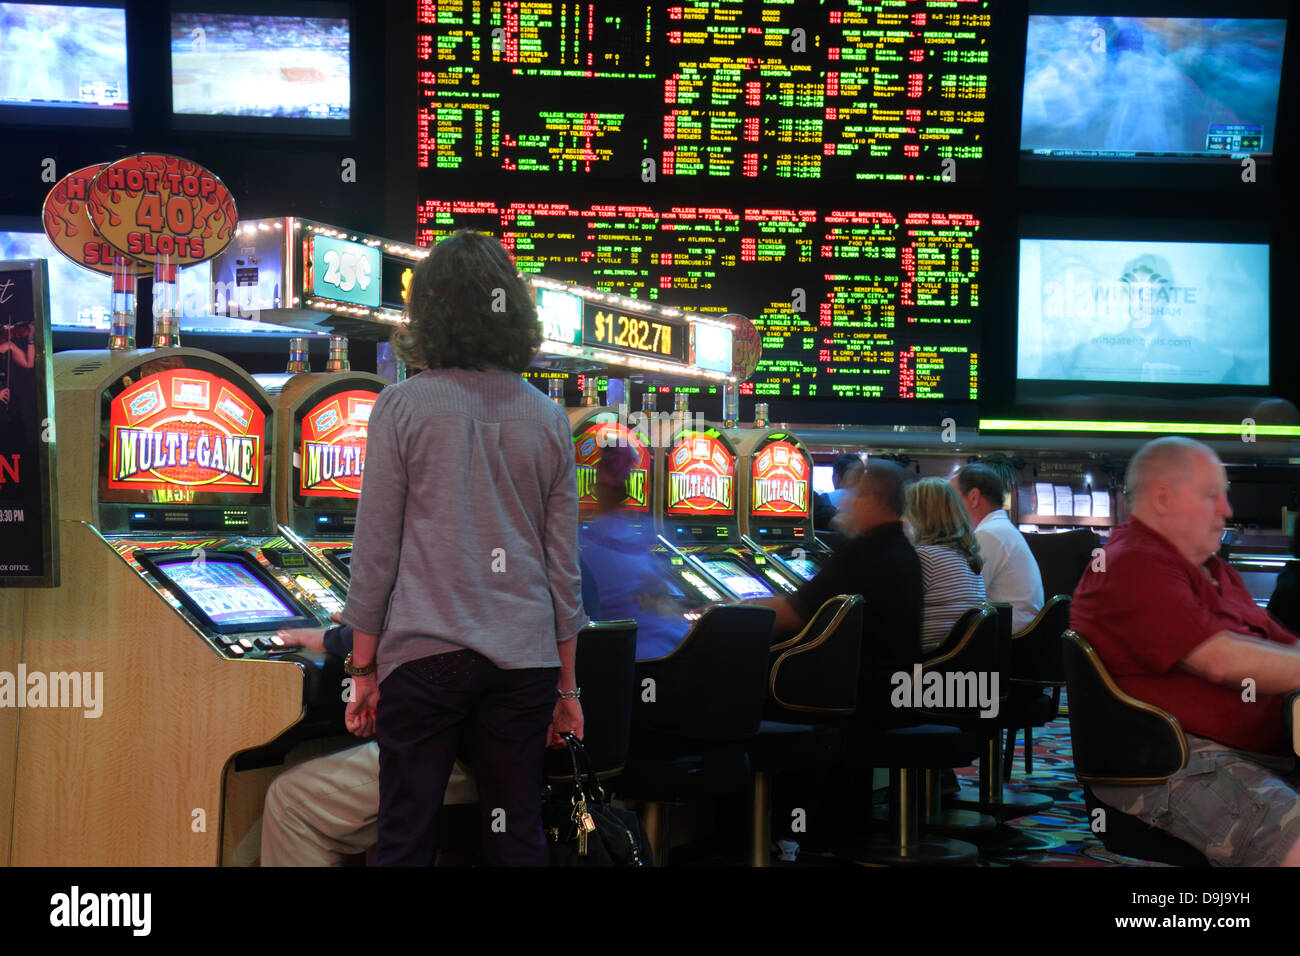 Book casino search sport gambling school tunica